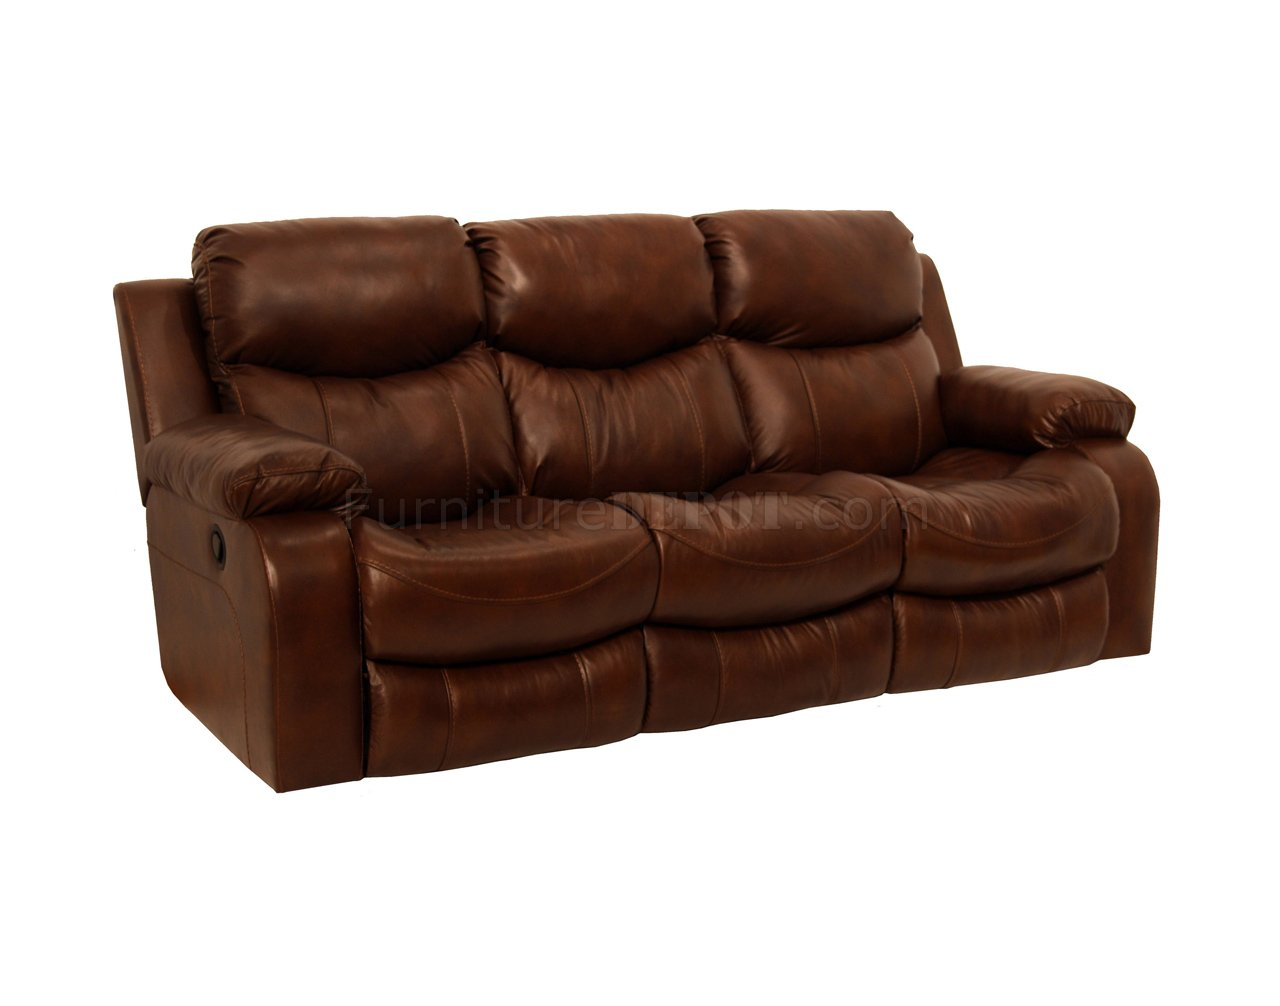 catnapper reclining sofas reviews tufted sofa living room tobacco top grain leather dallas motion w